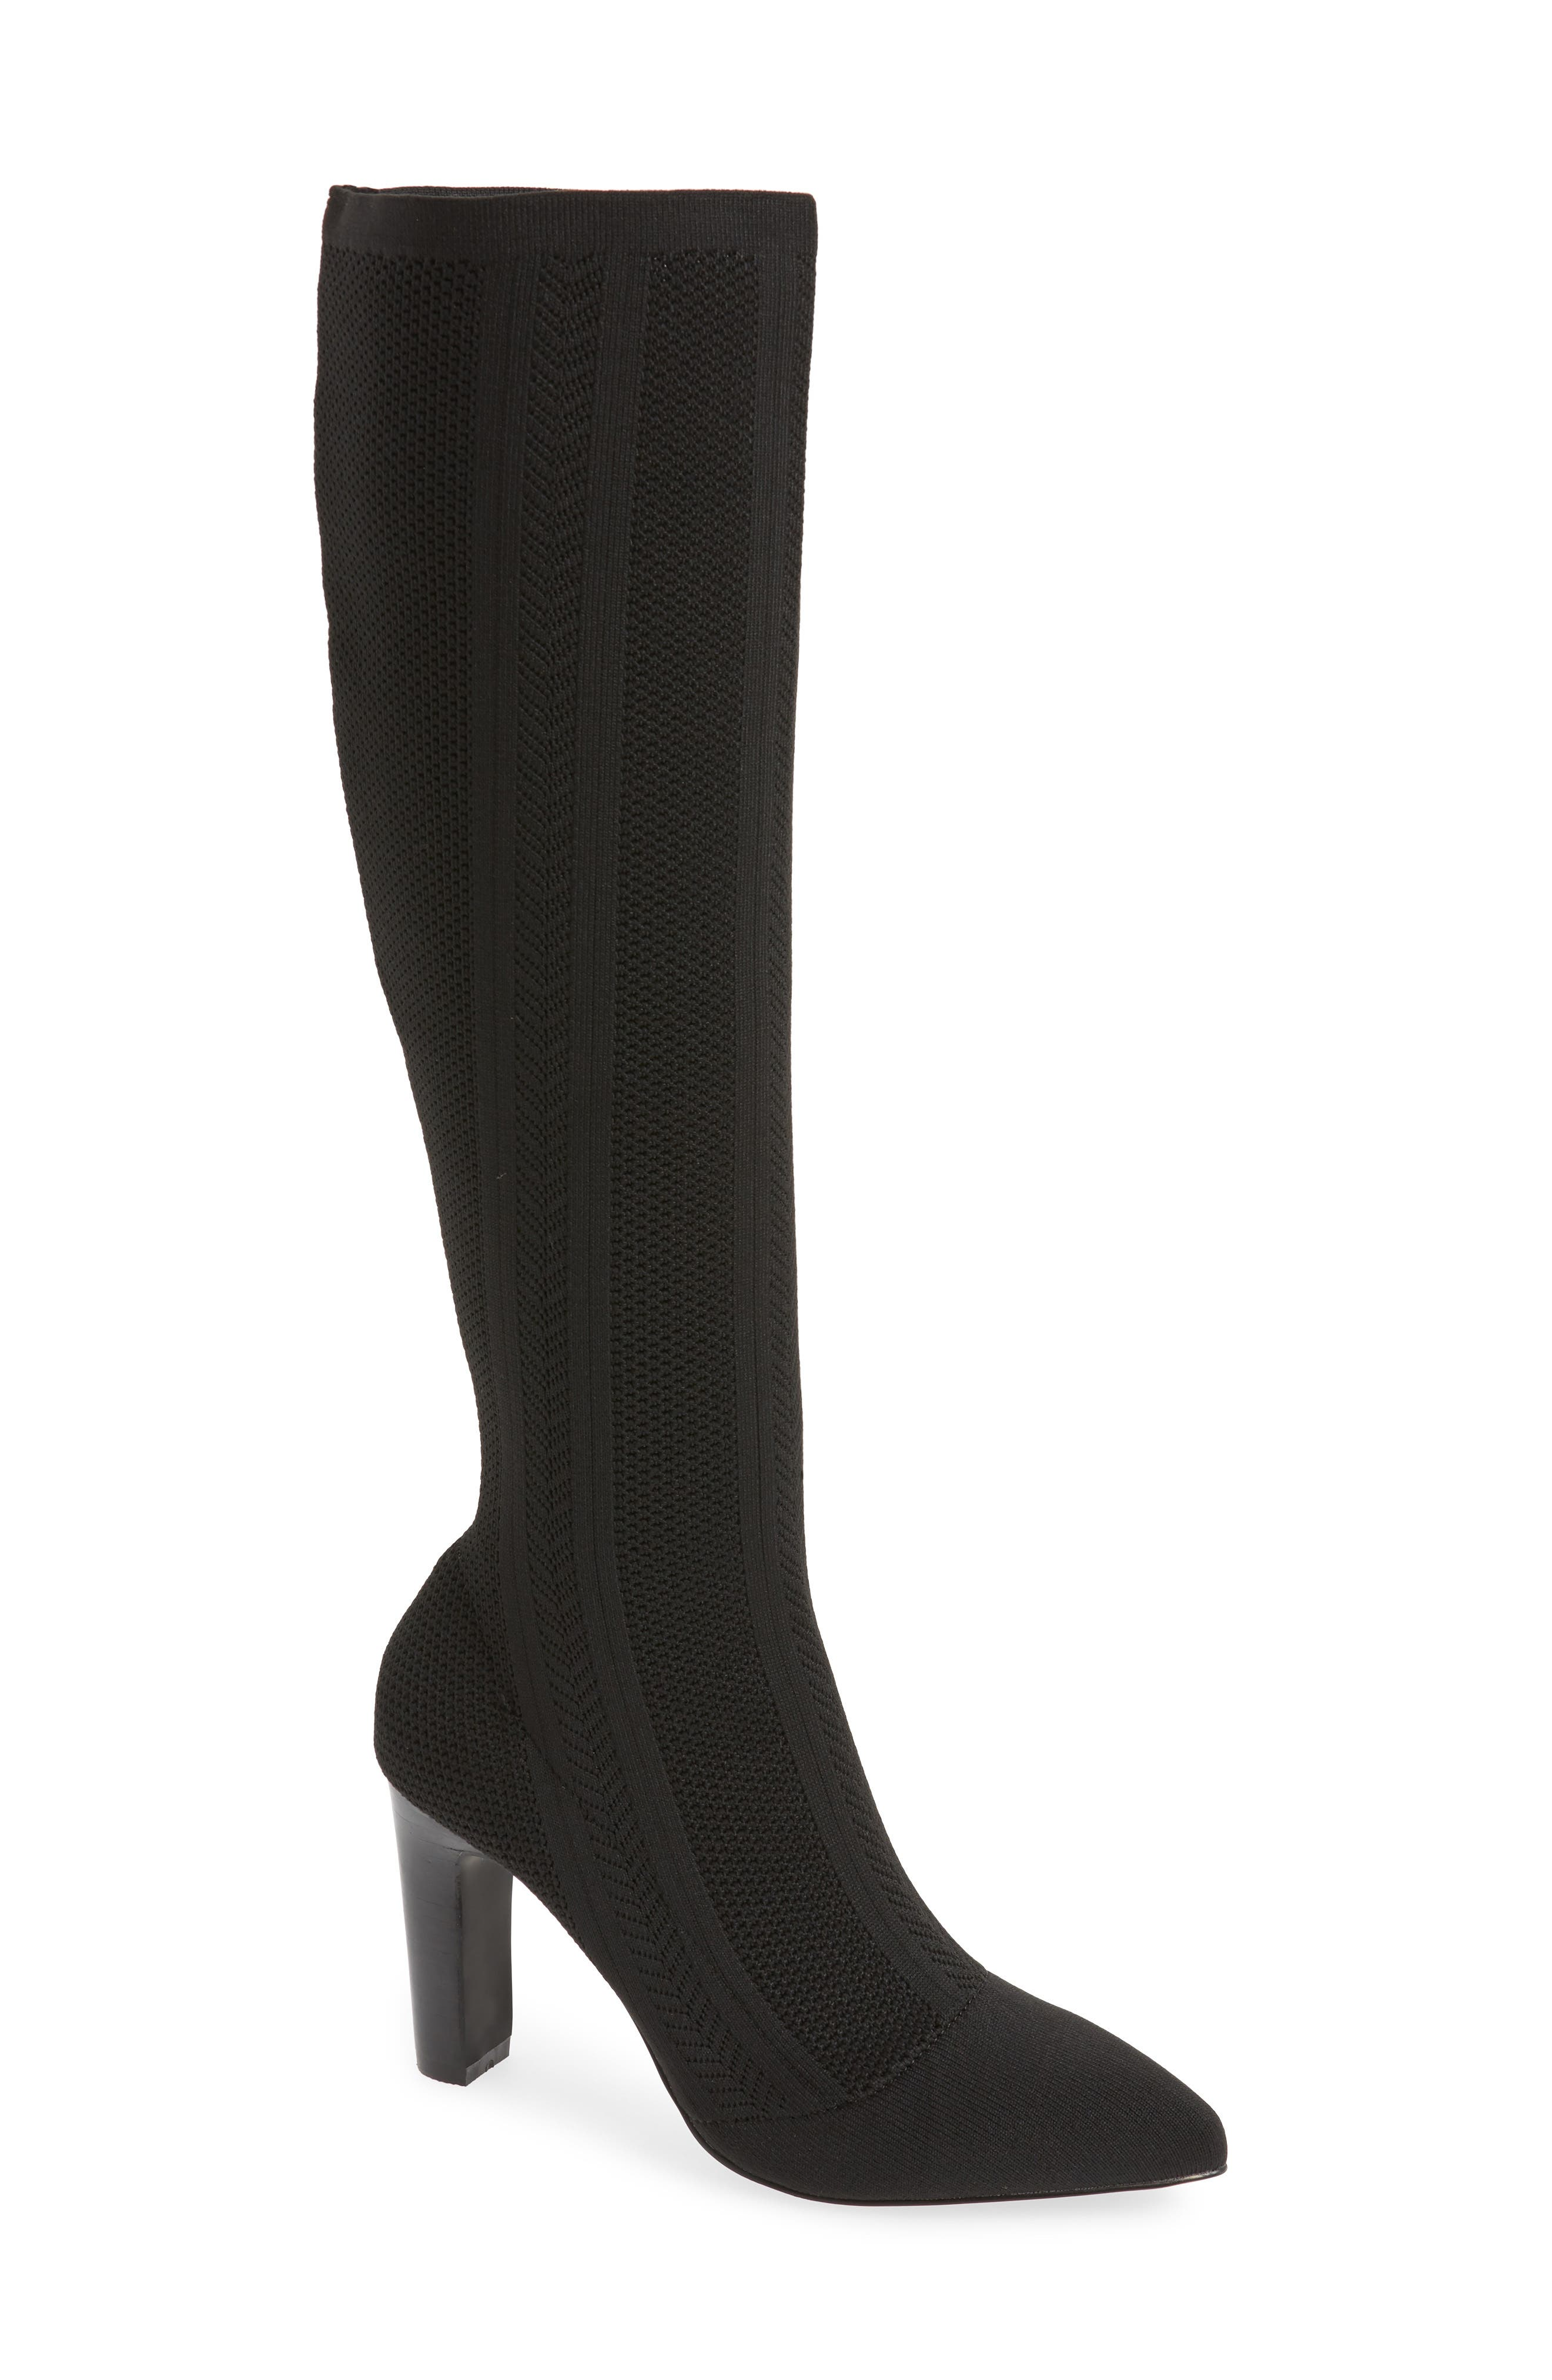 Davis Stretch Over-The-Knee Boots in Black